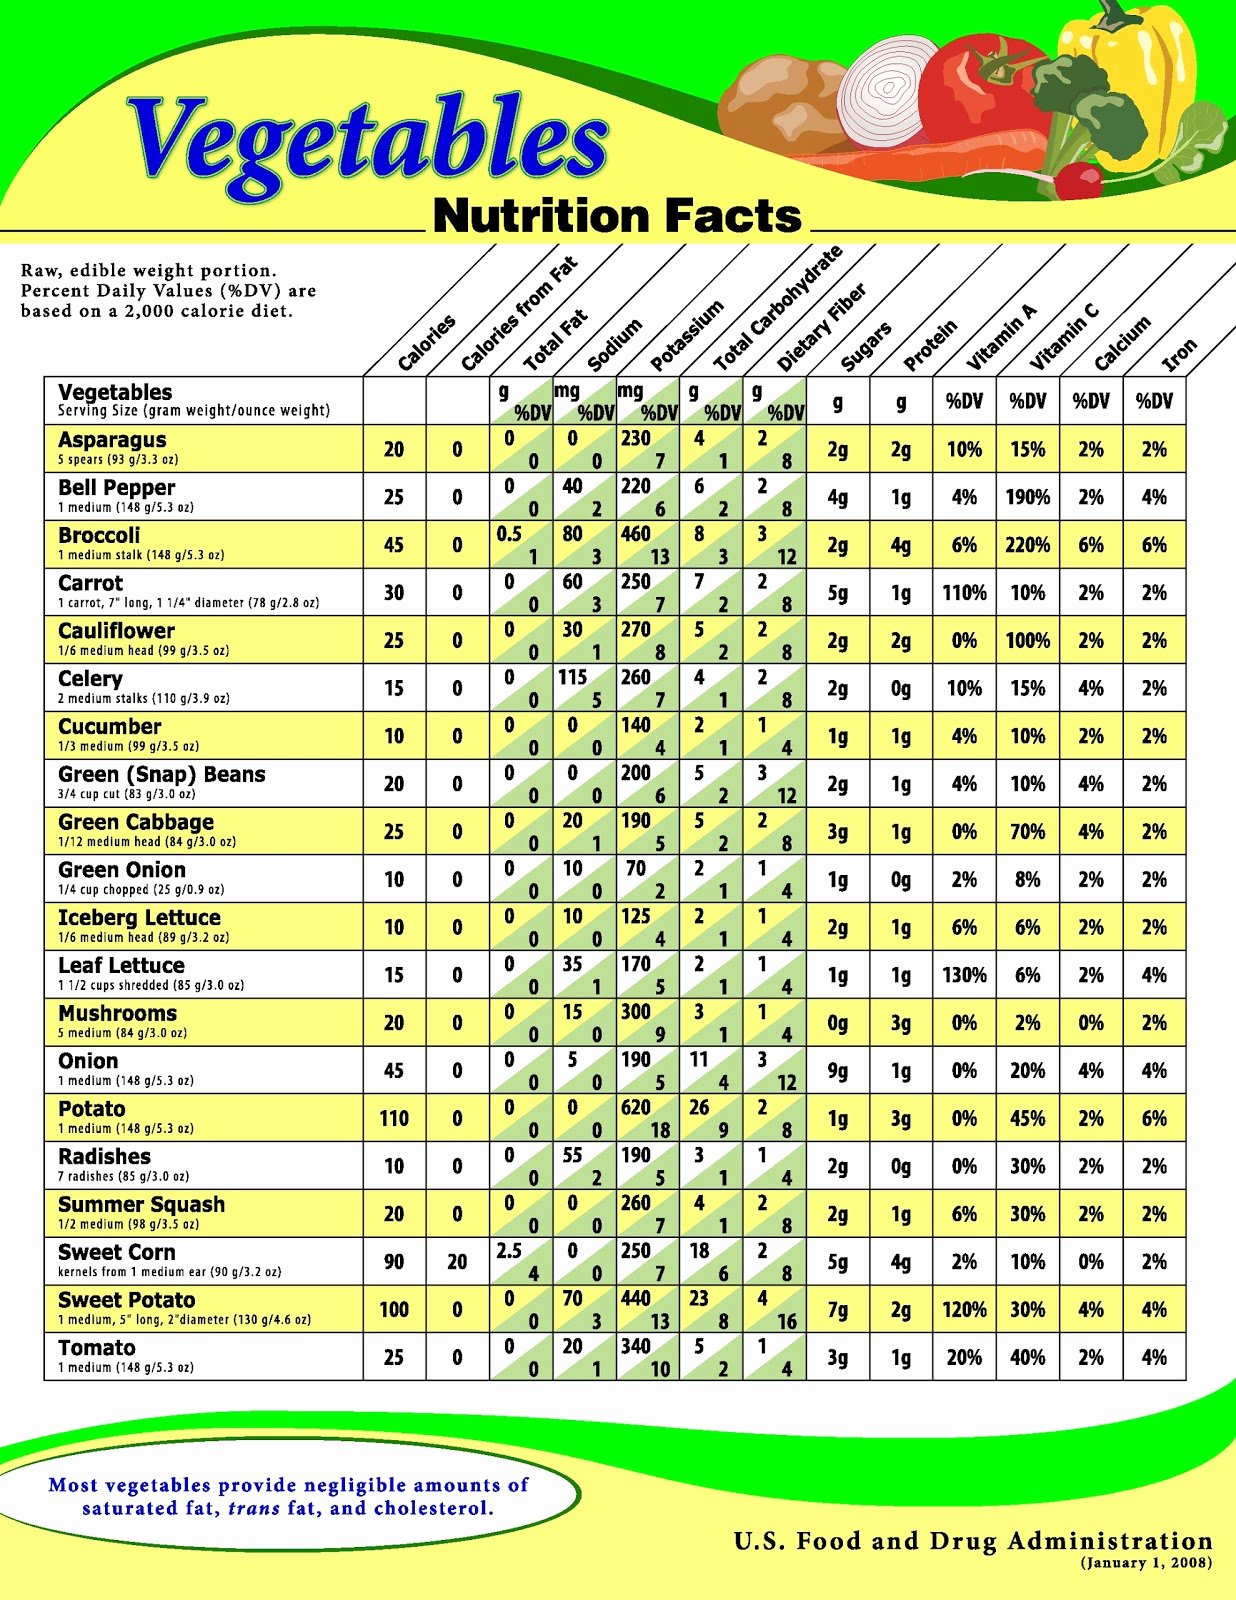 Printable Food Calorie Chart Awesome Routine Life Measurements Ve Ables Nutrition's Fact Sheet